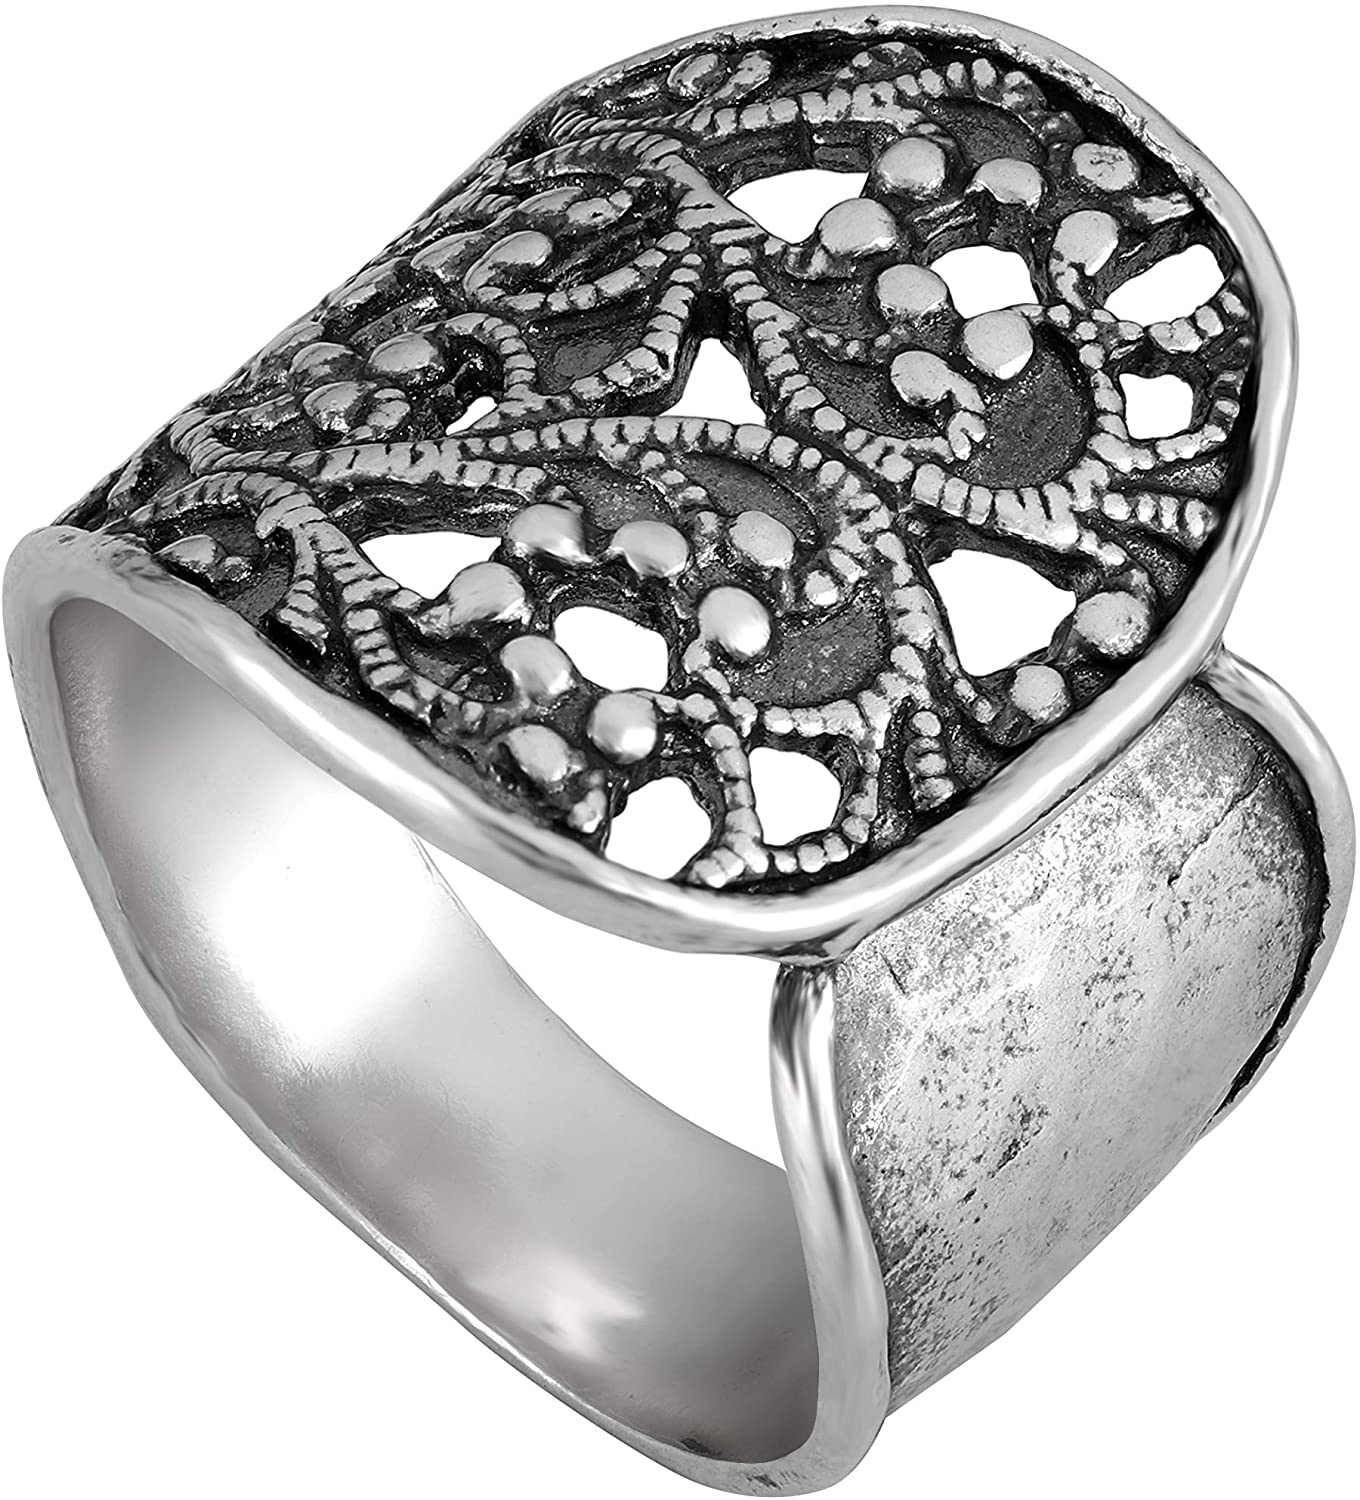 PZ Paz Creations 925 Sterling Silver Lace Textured Wrap Ring